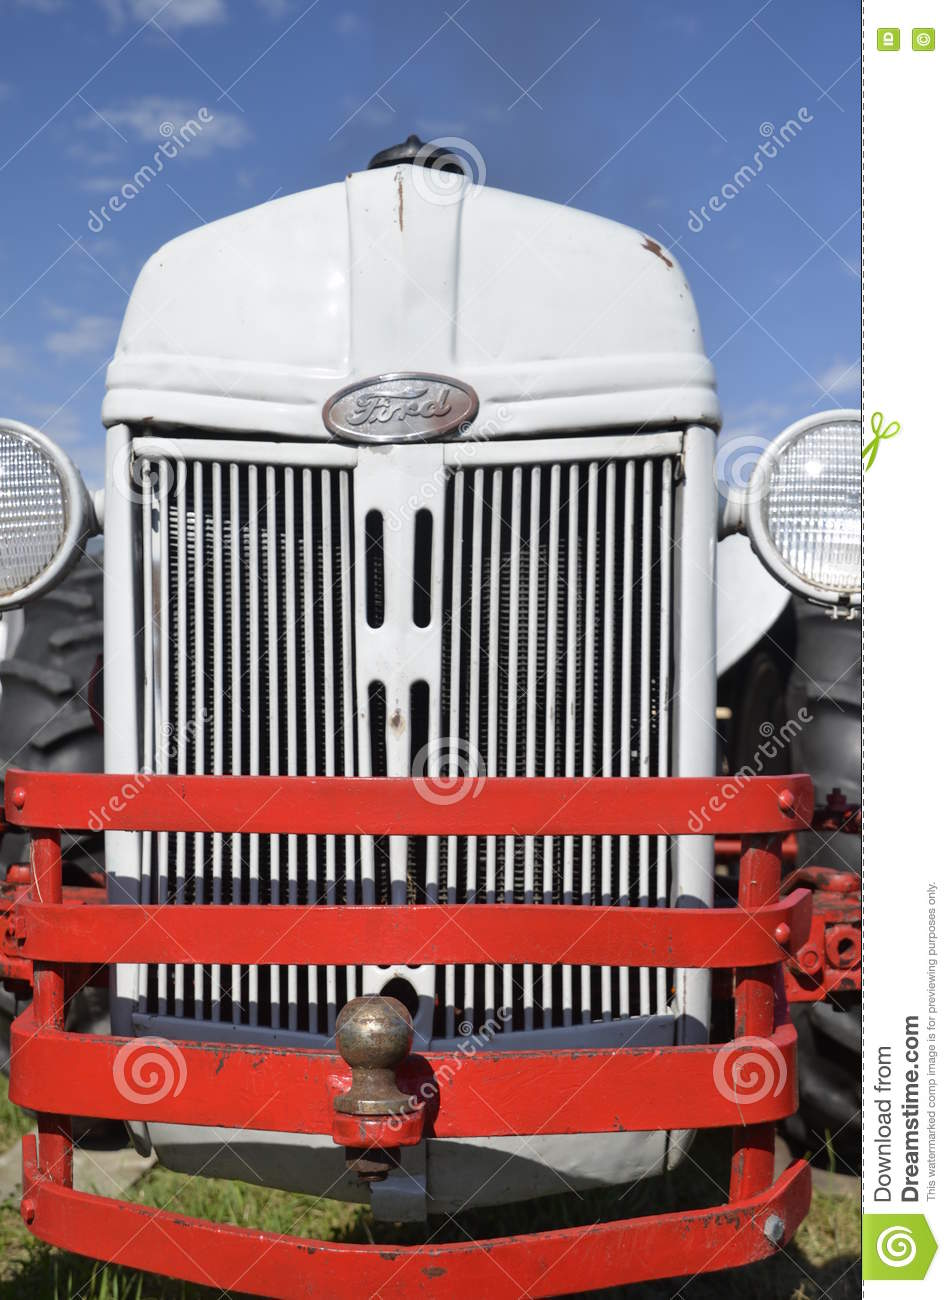 Tractor Grill Protector : Old ford tractor with grill guards editorial photography